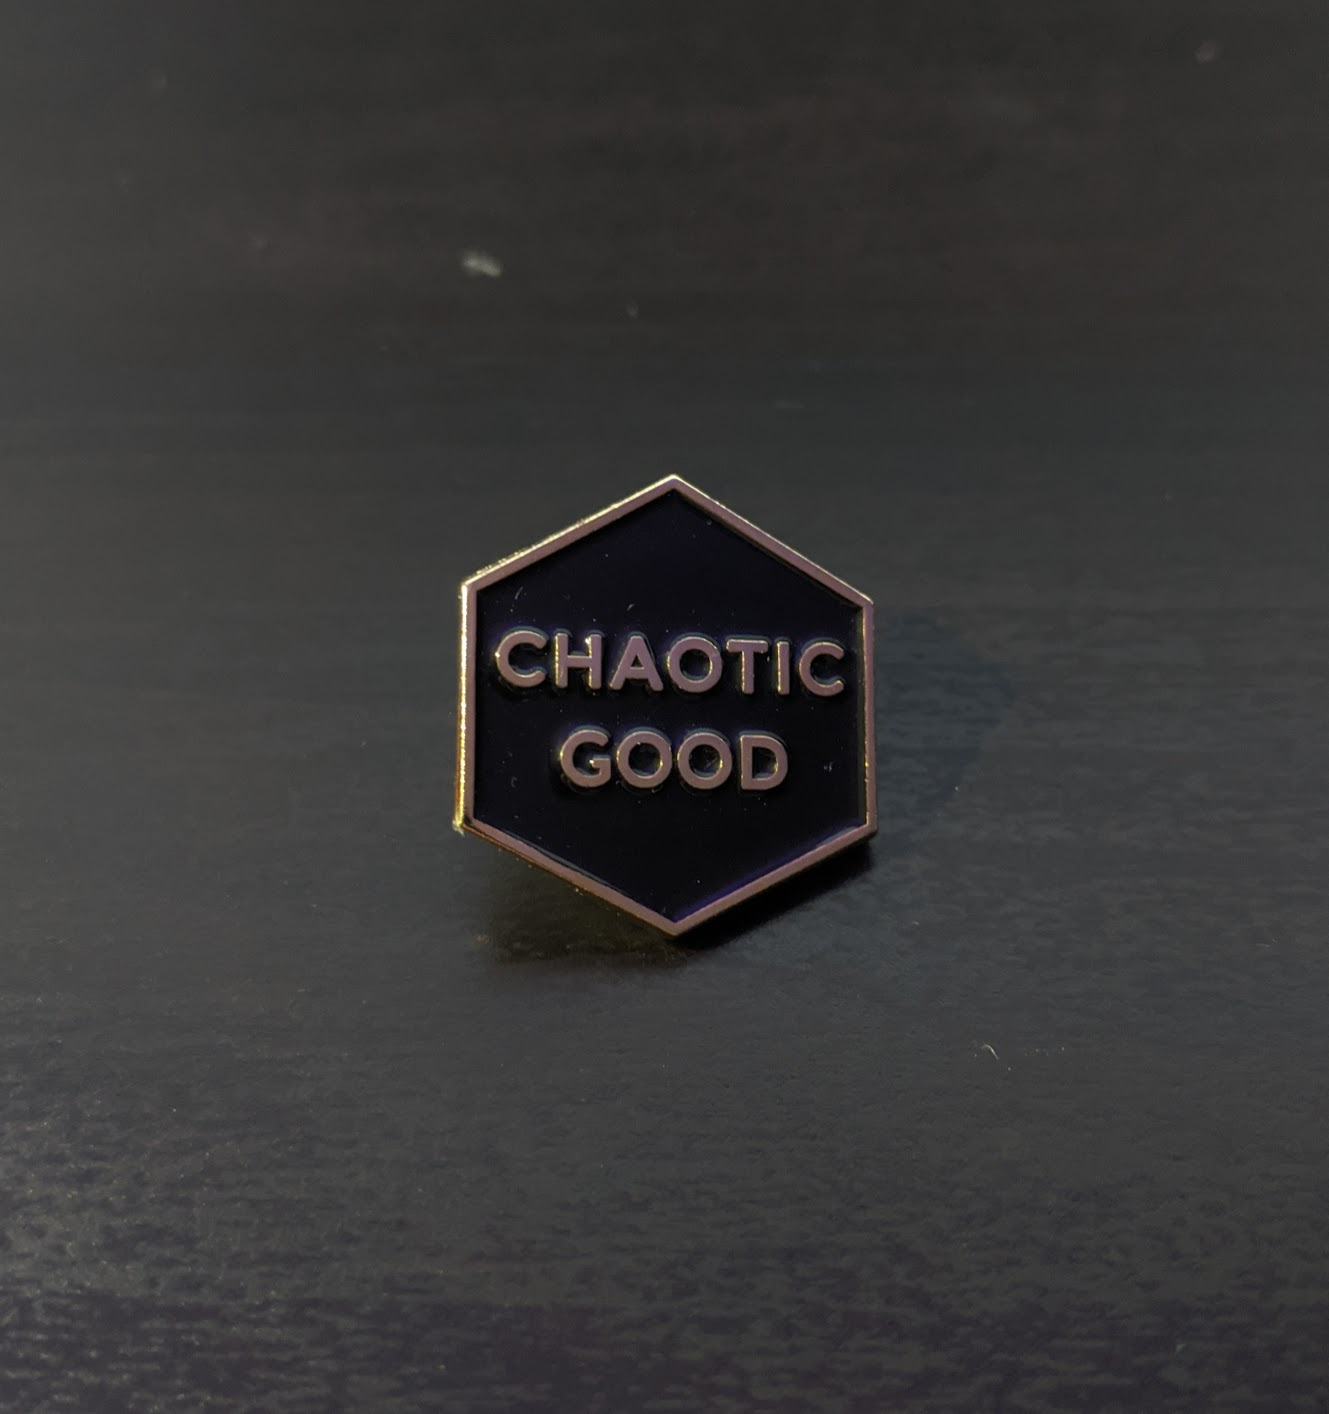 Chaotic Good Enamel Pin